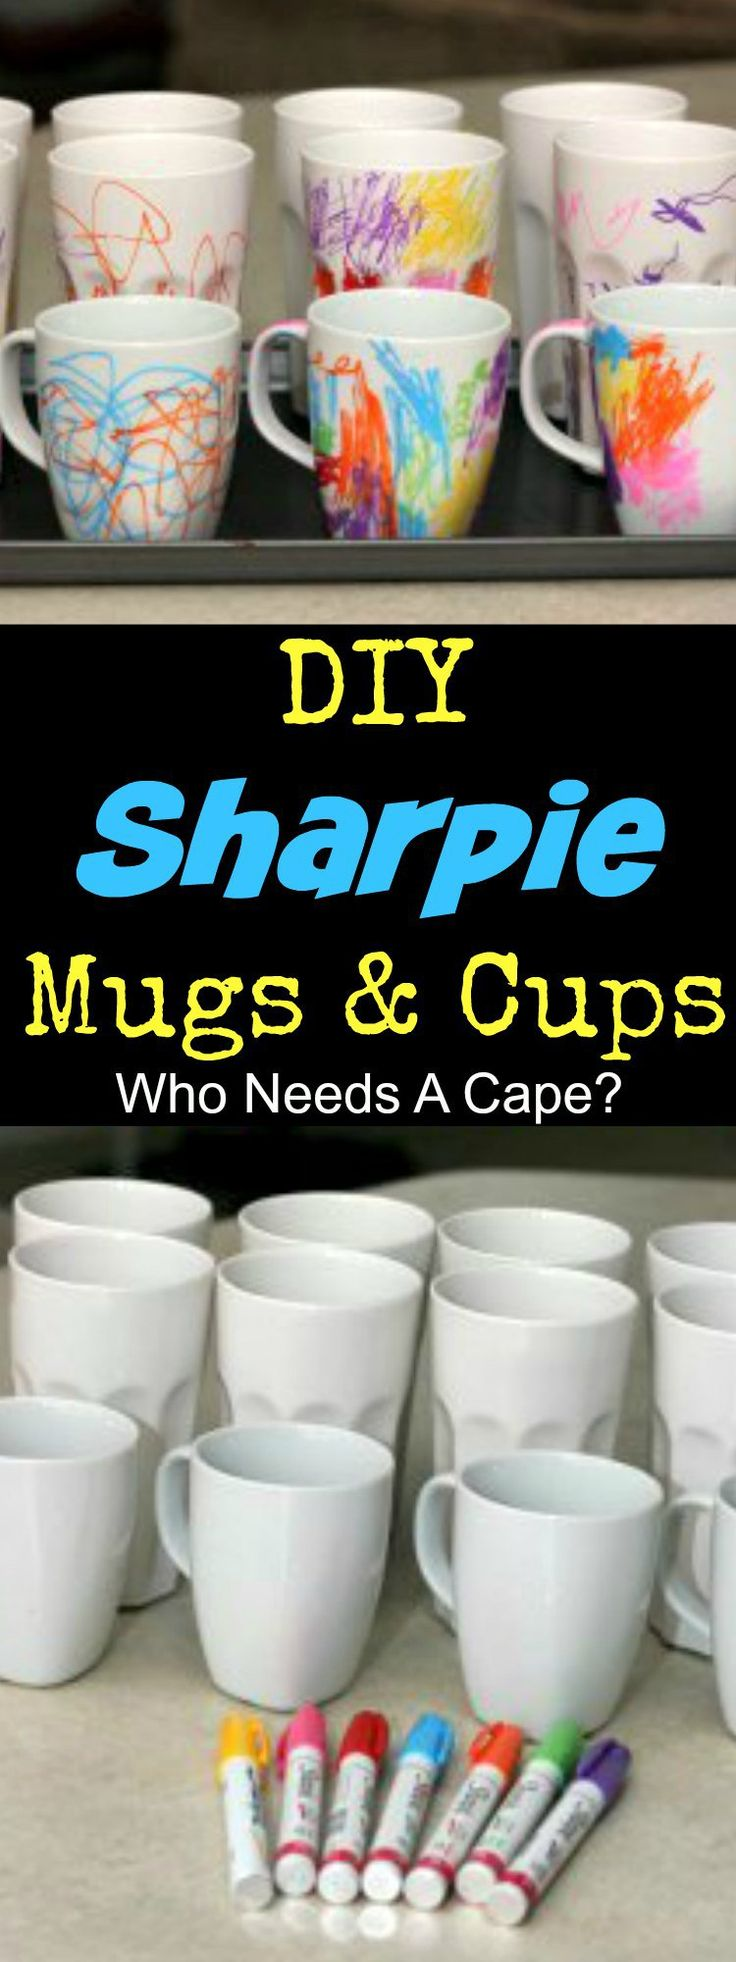 shop for shoes by heel height for work These DIY Sharpie Ceramic Mugs and Cups are such a fun family project  Let the kids decorate and give as gifts  they  39 ll be a treasured momento